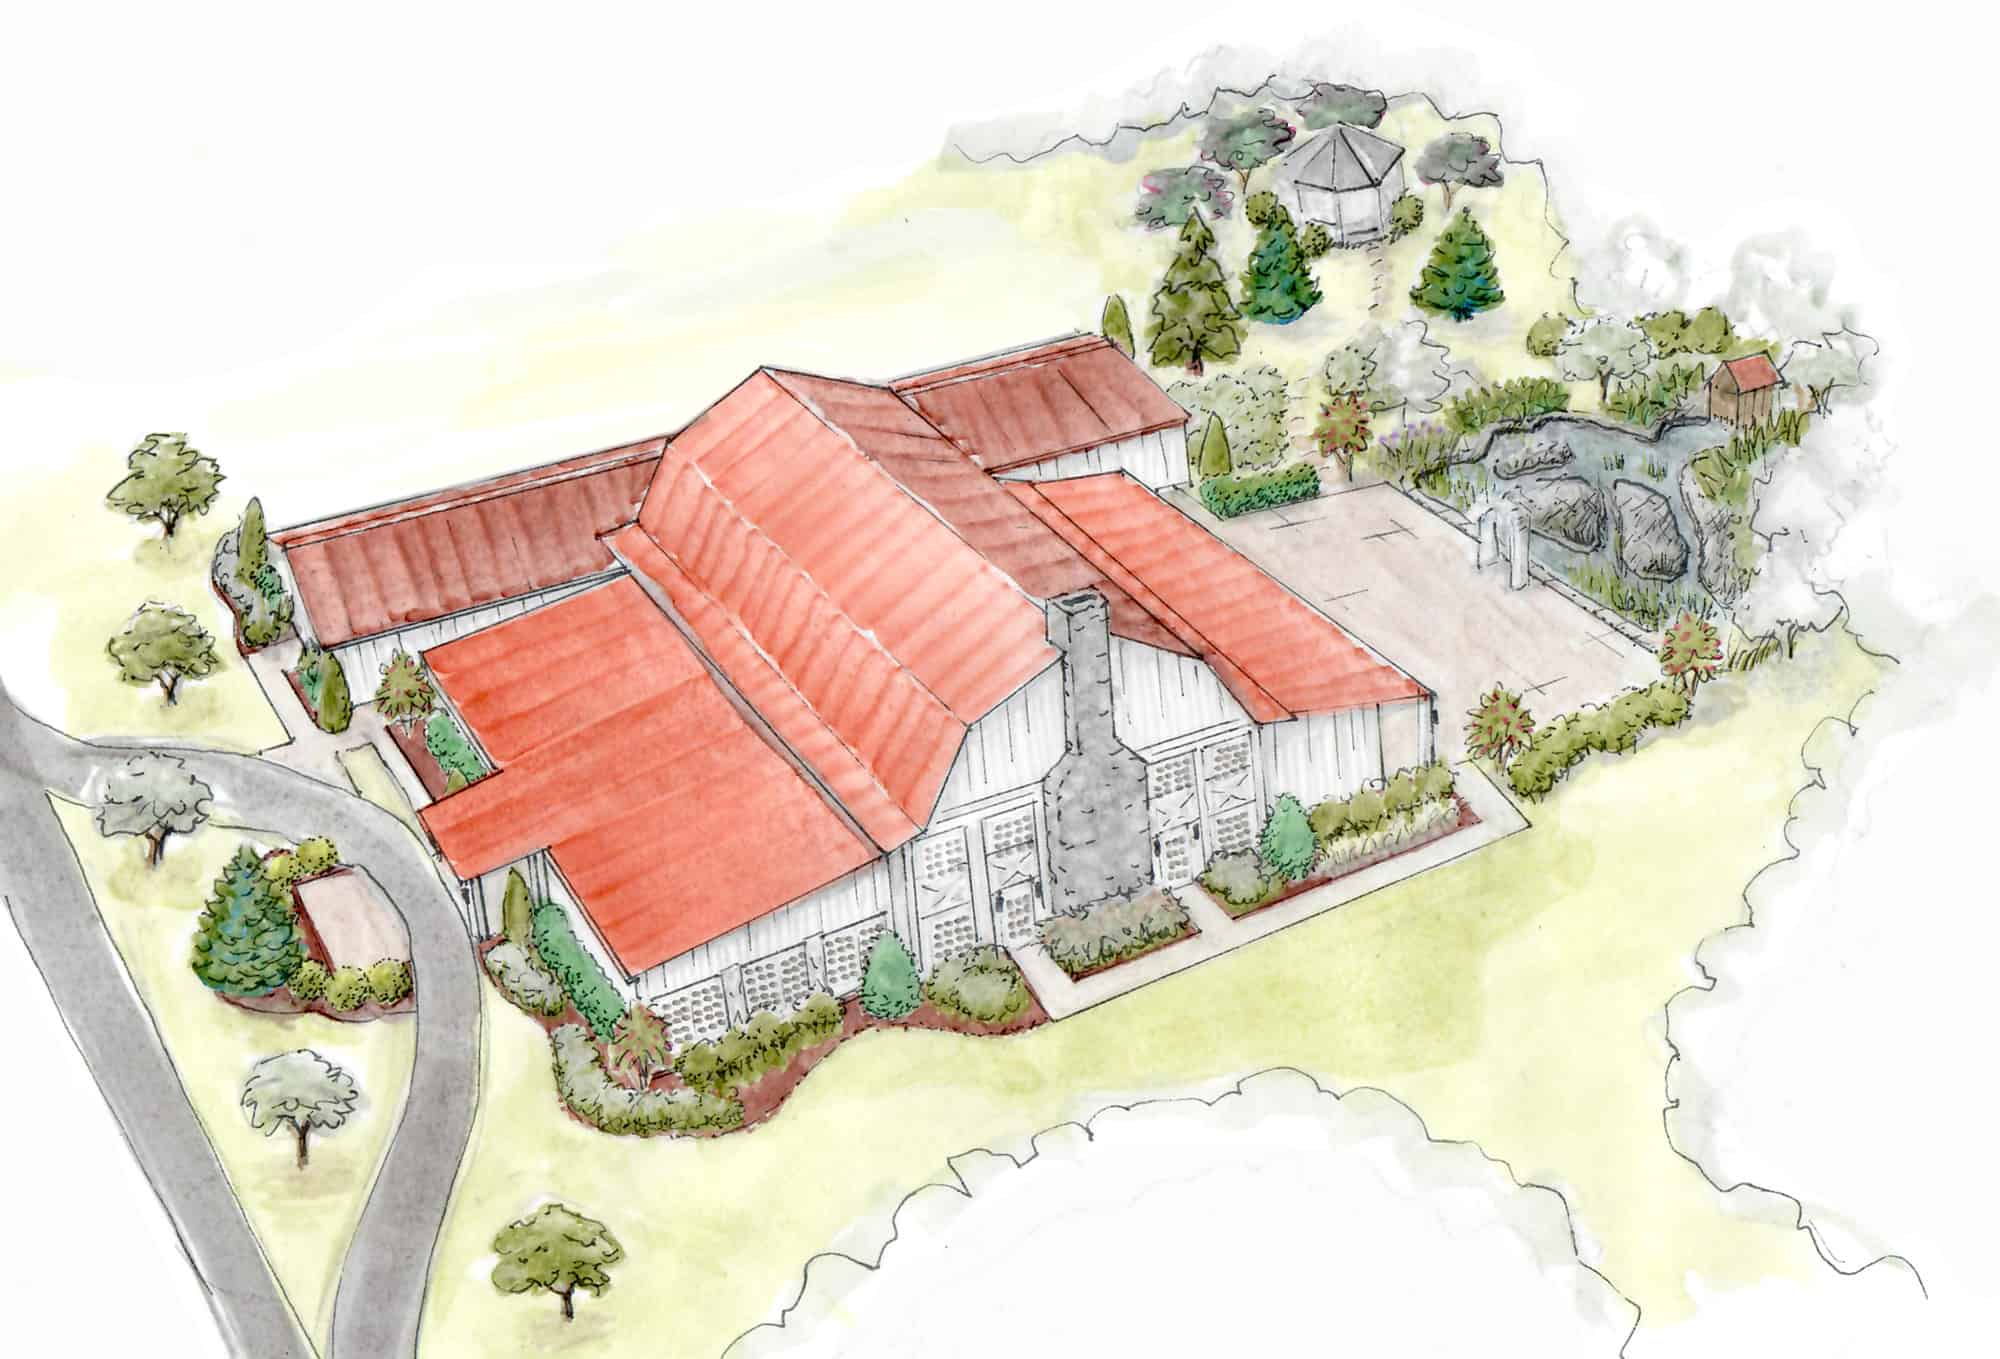 water color red roof party barn mass timber